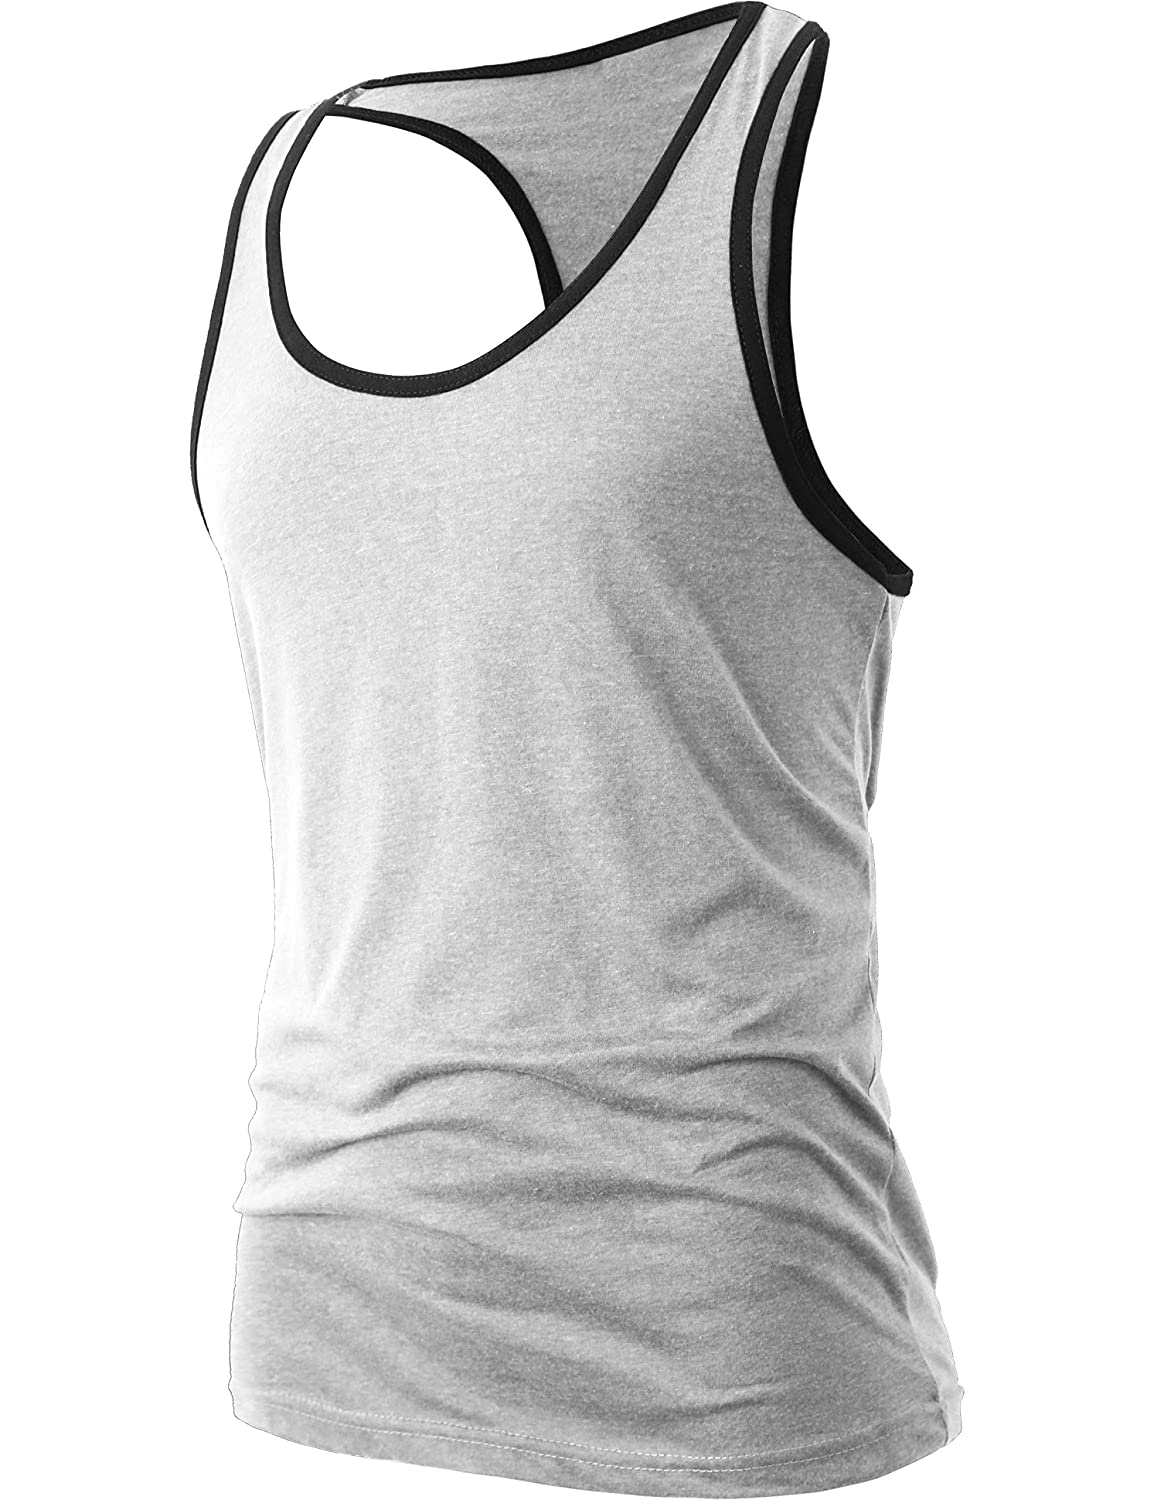 Hat and Beyond Mens Tank Top Racerback Soft Muscle Shirts Workout Gym MAA12